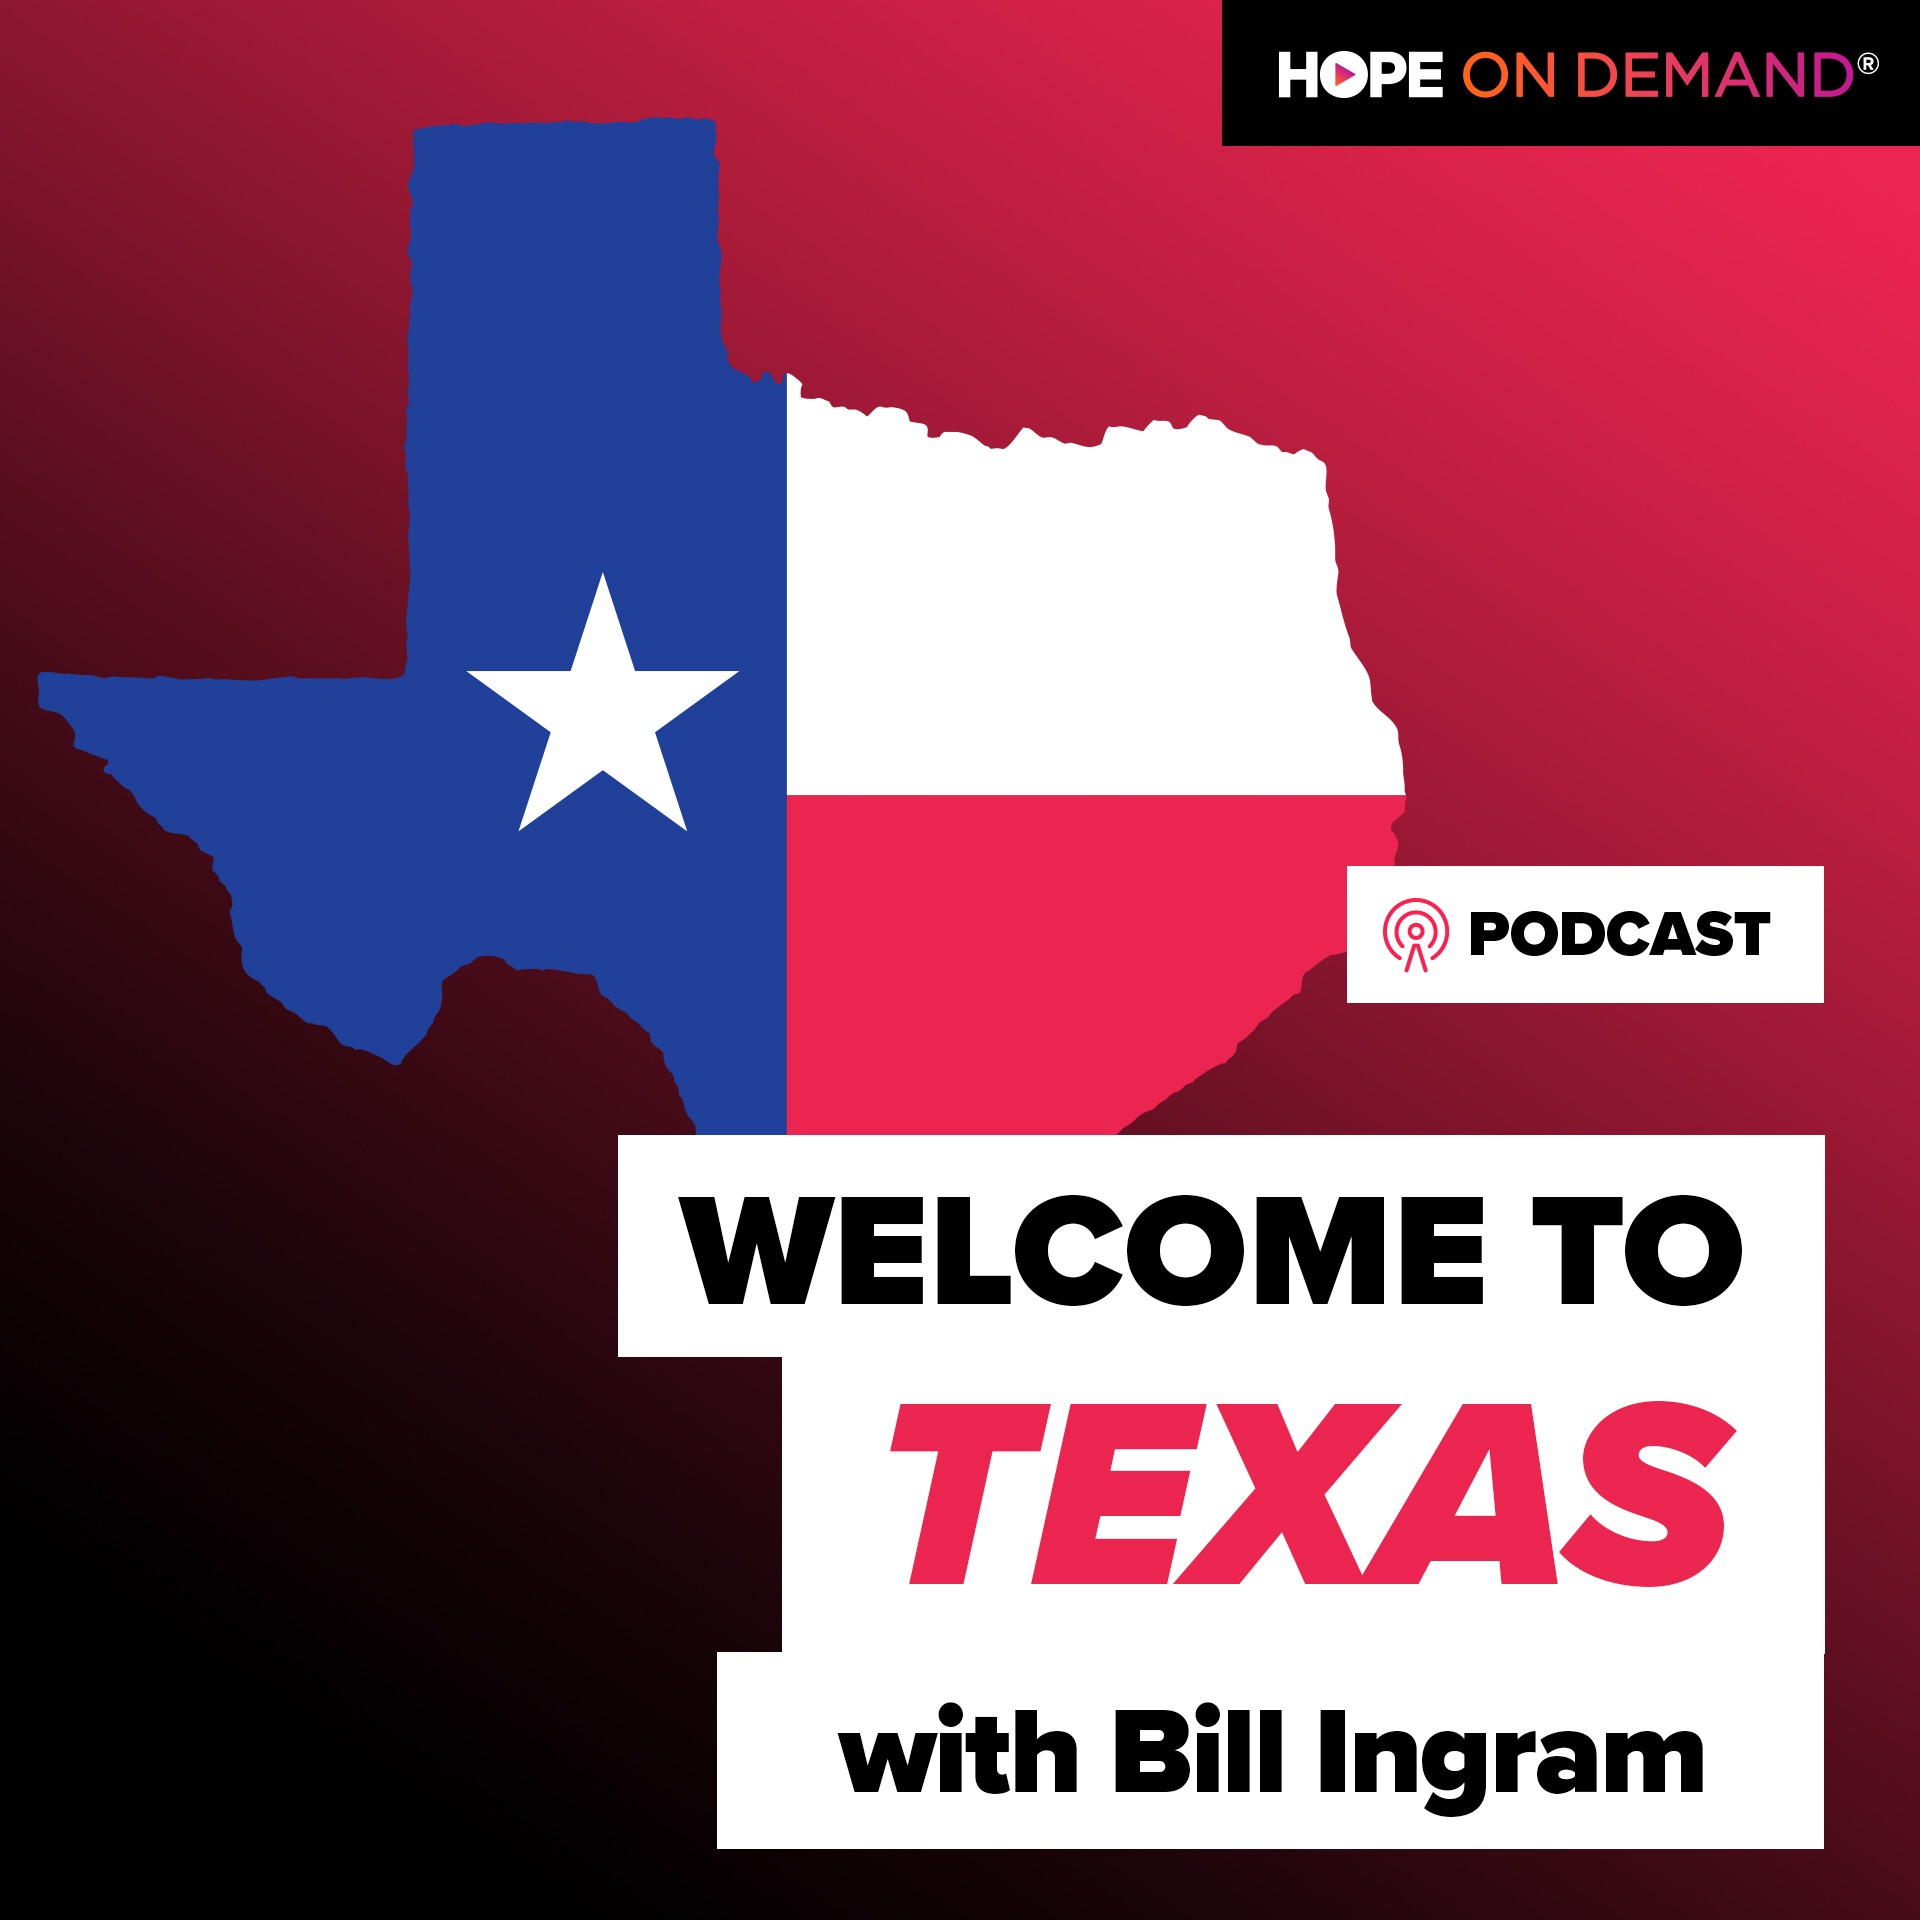 Welcome to Texas with Bill Ingram